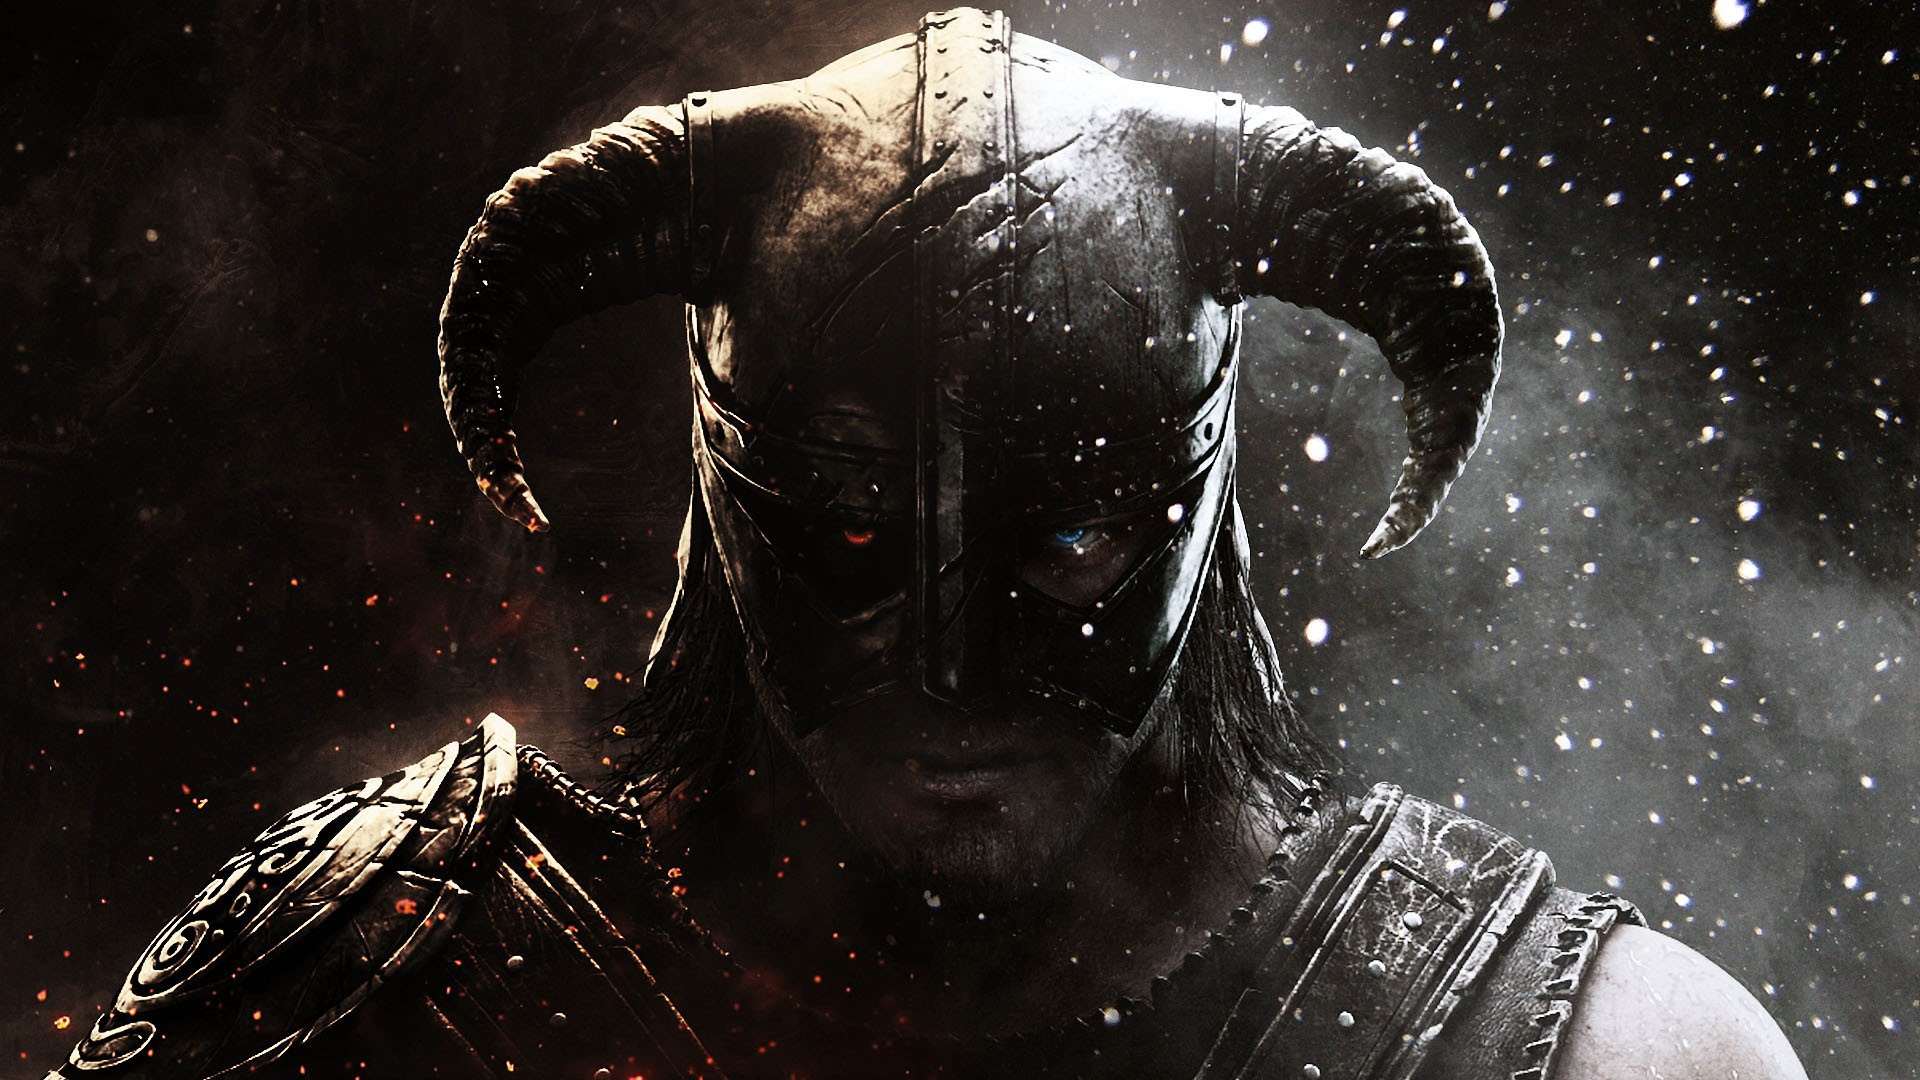 Wallpaper The Elder Scrolls V: Skyrim Helmet with horns